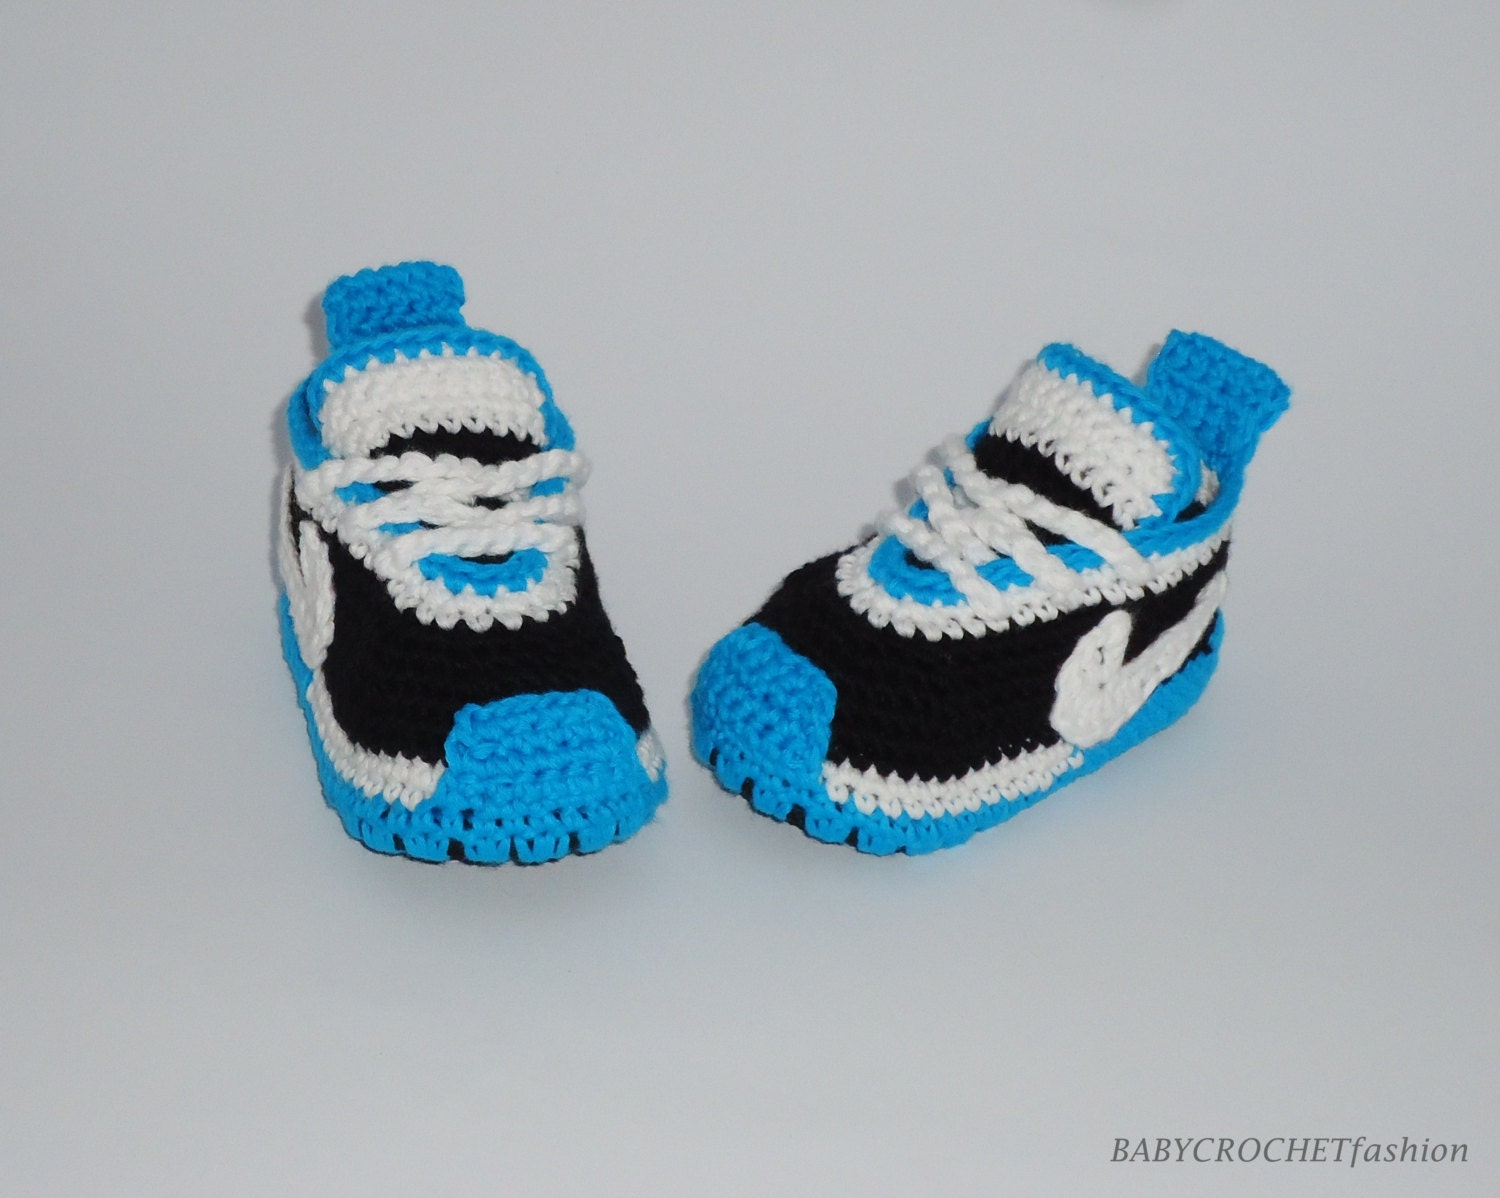 best service 2305a 56a66 Baby Crochet Shoes, Newborn Baby Shoes, Blue Slippers, Boy Sneakers, Nike  Tennis Shoes, Baby Gift, Toddler Babies, Nike Crochet Shoes